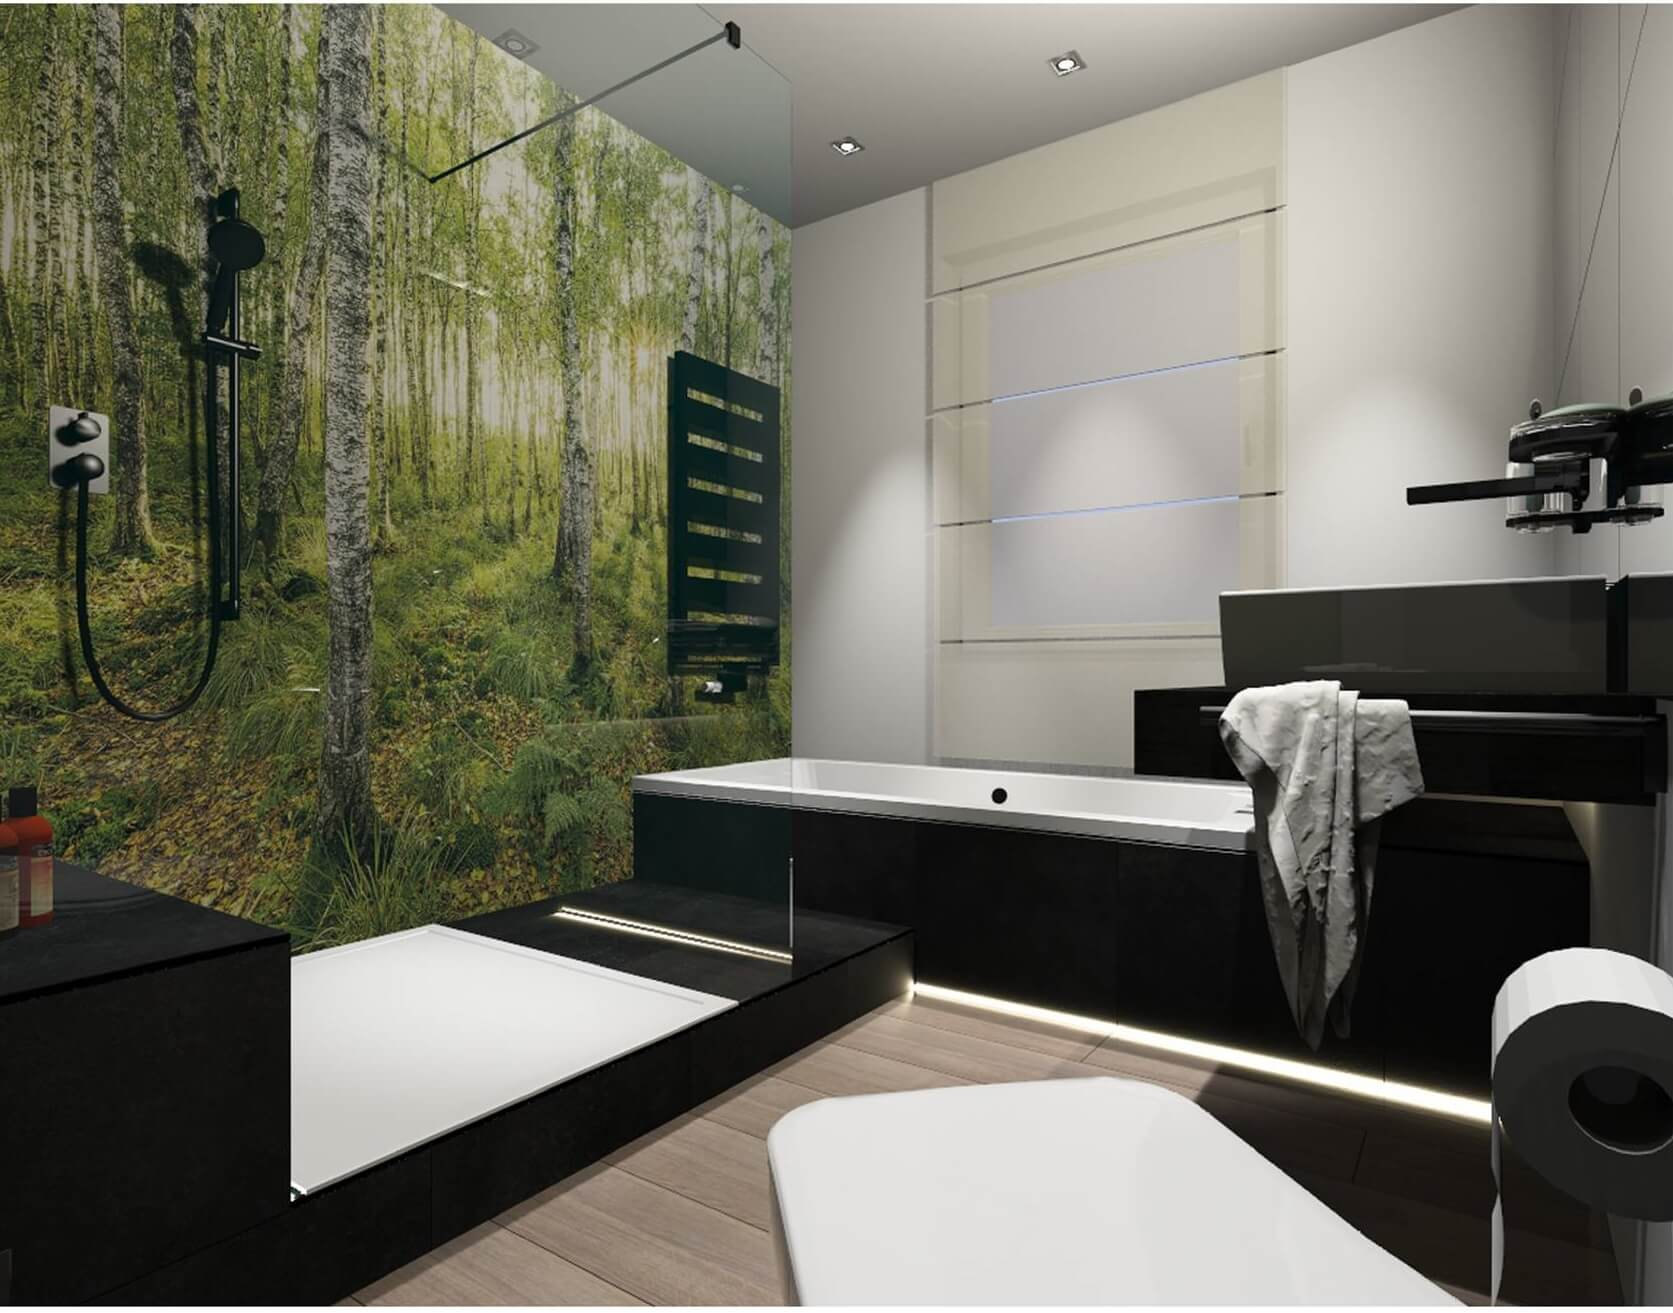 badsanierung kosten komplett nicht mehr weit zum traumbad. Black Bedroom Furniture Sets. Home Design Ideas